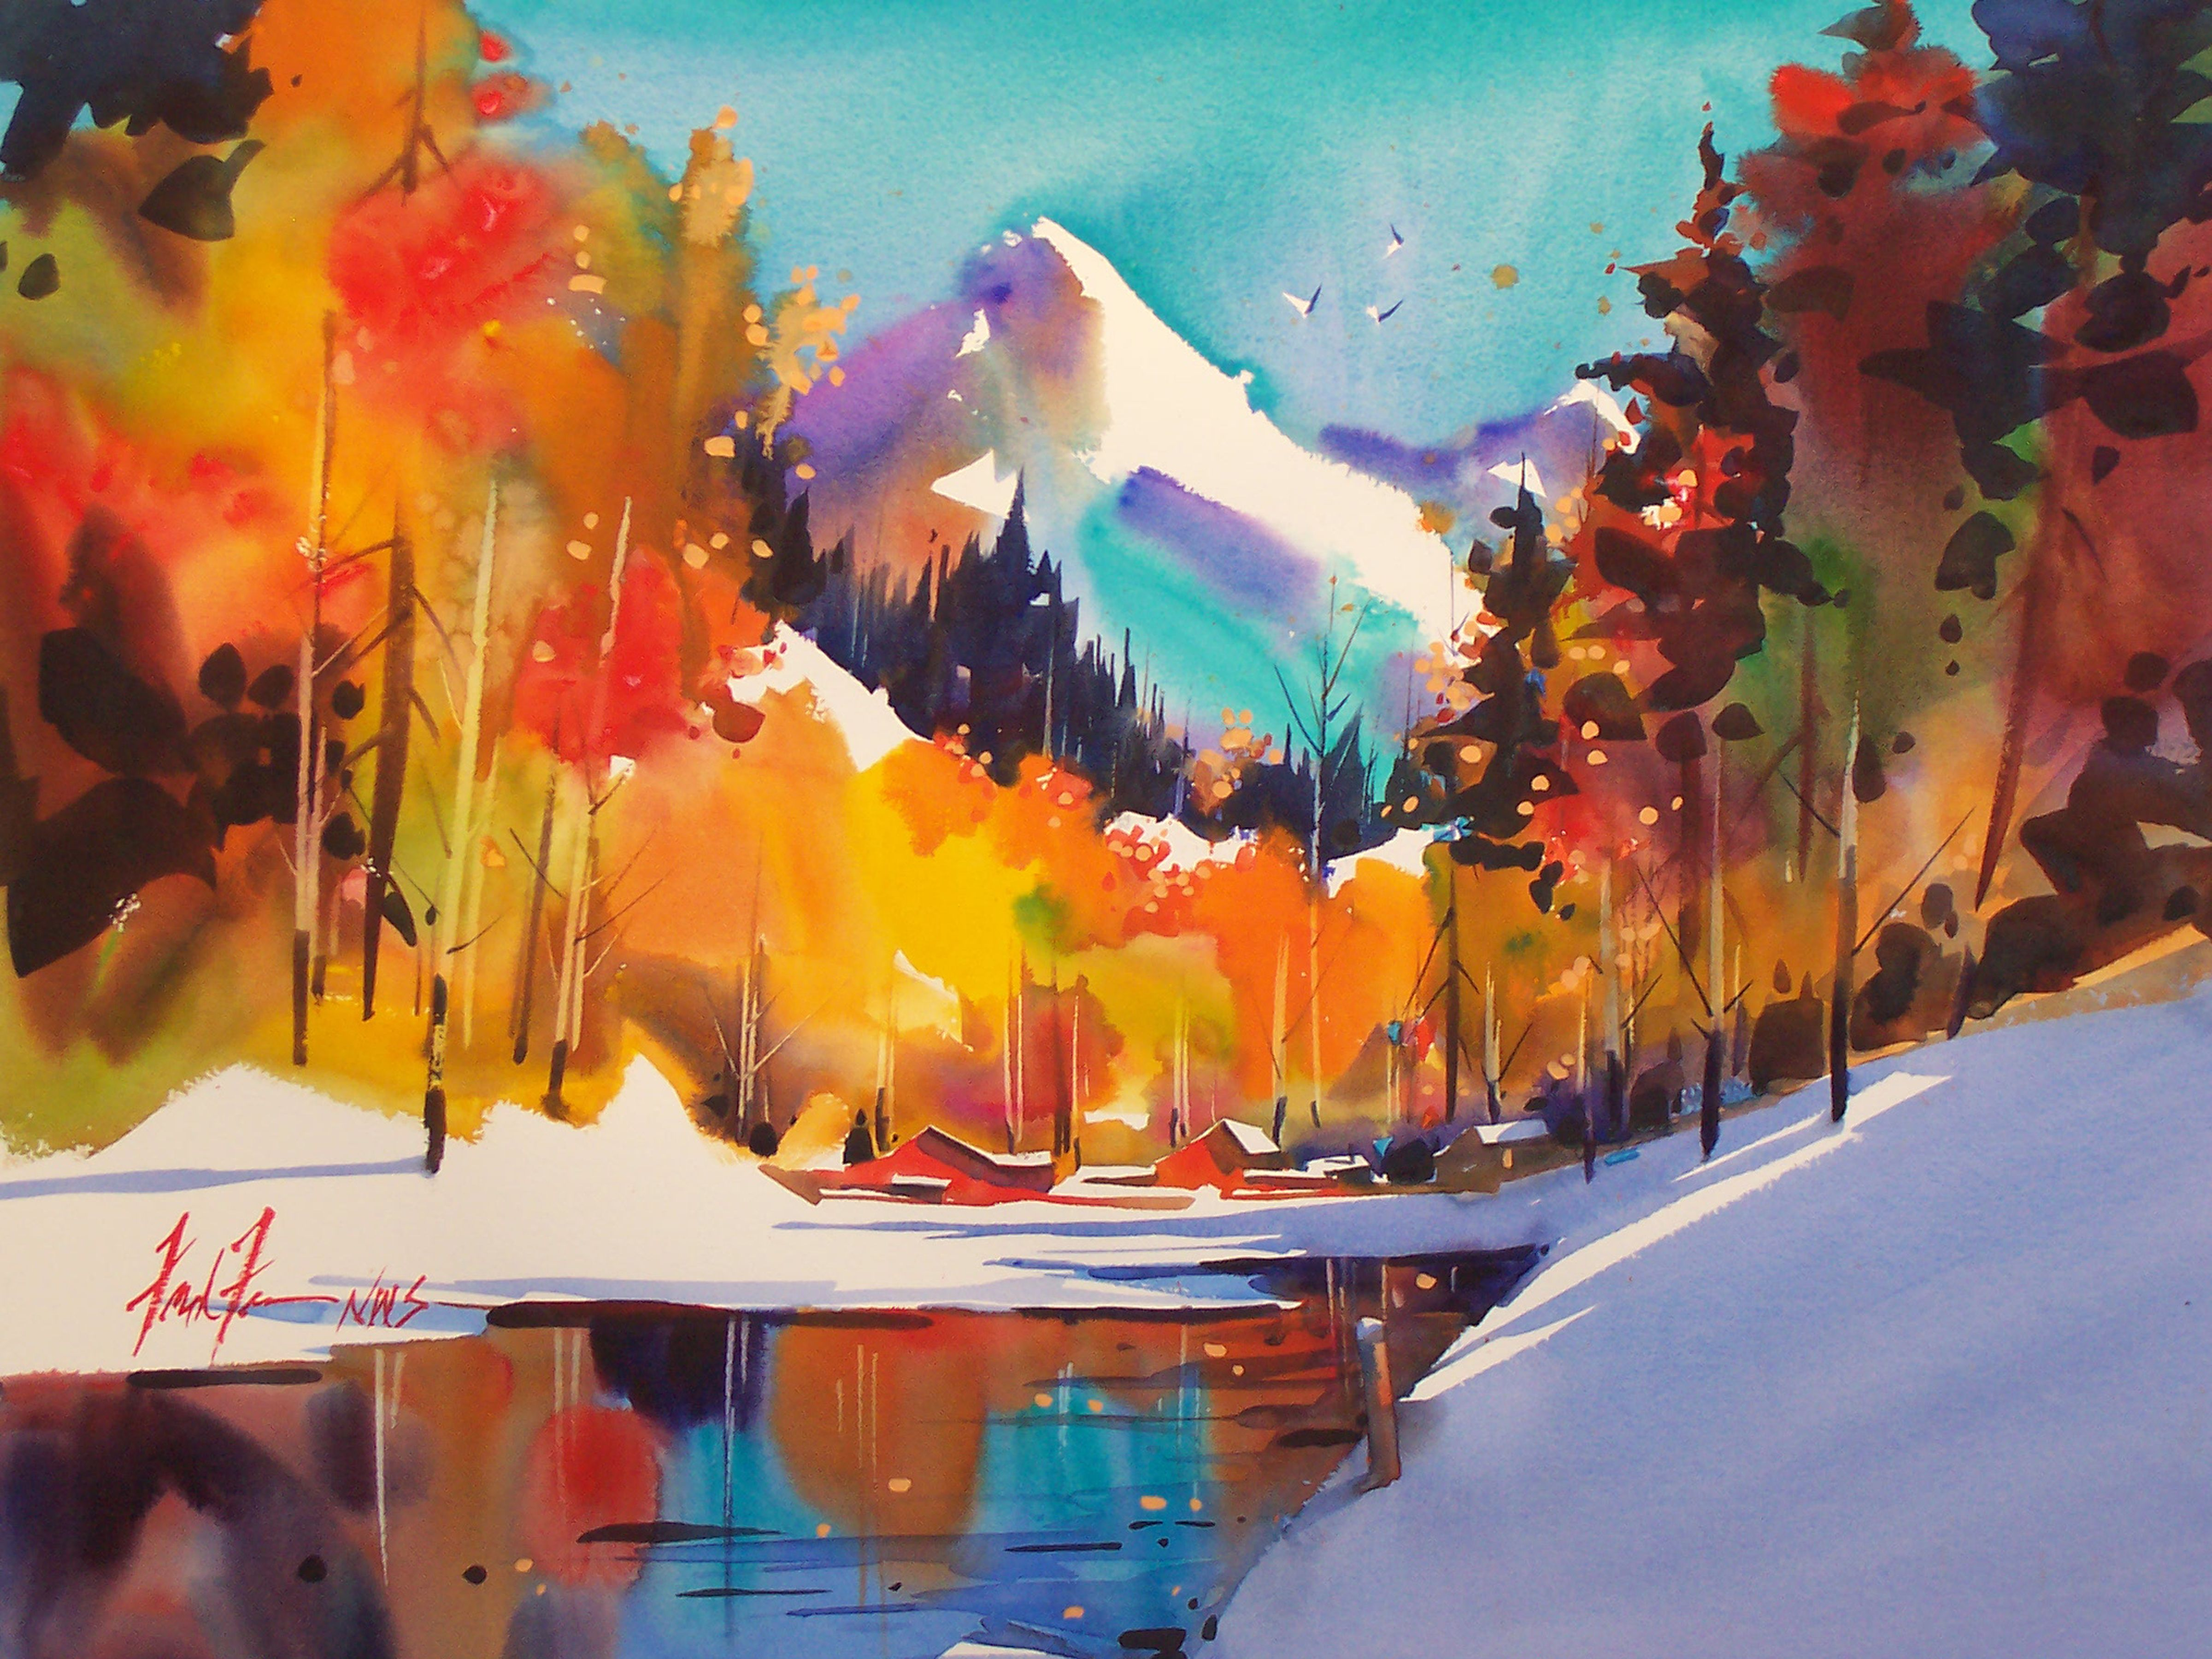 Watercolor artist magazine customer service - Powerful Color In This Frank Francese One Of My Fav Wc Painters